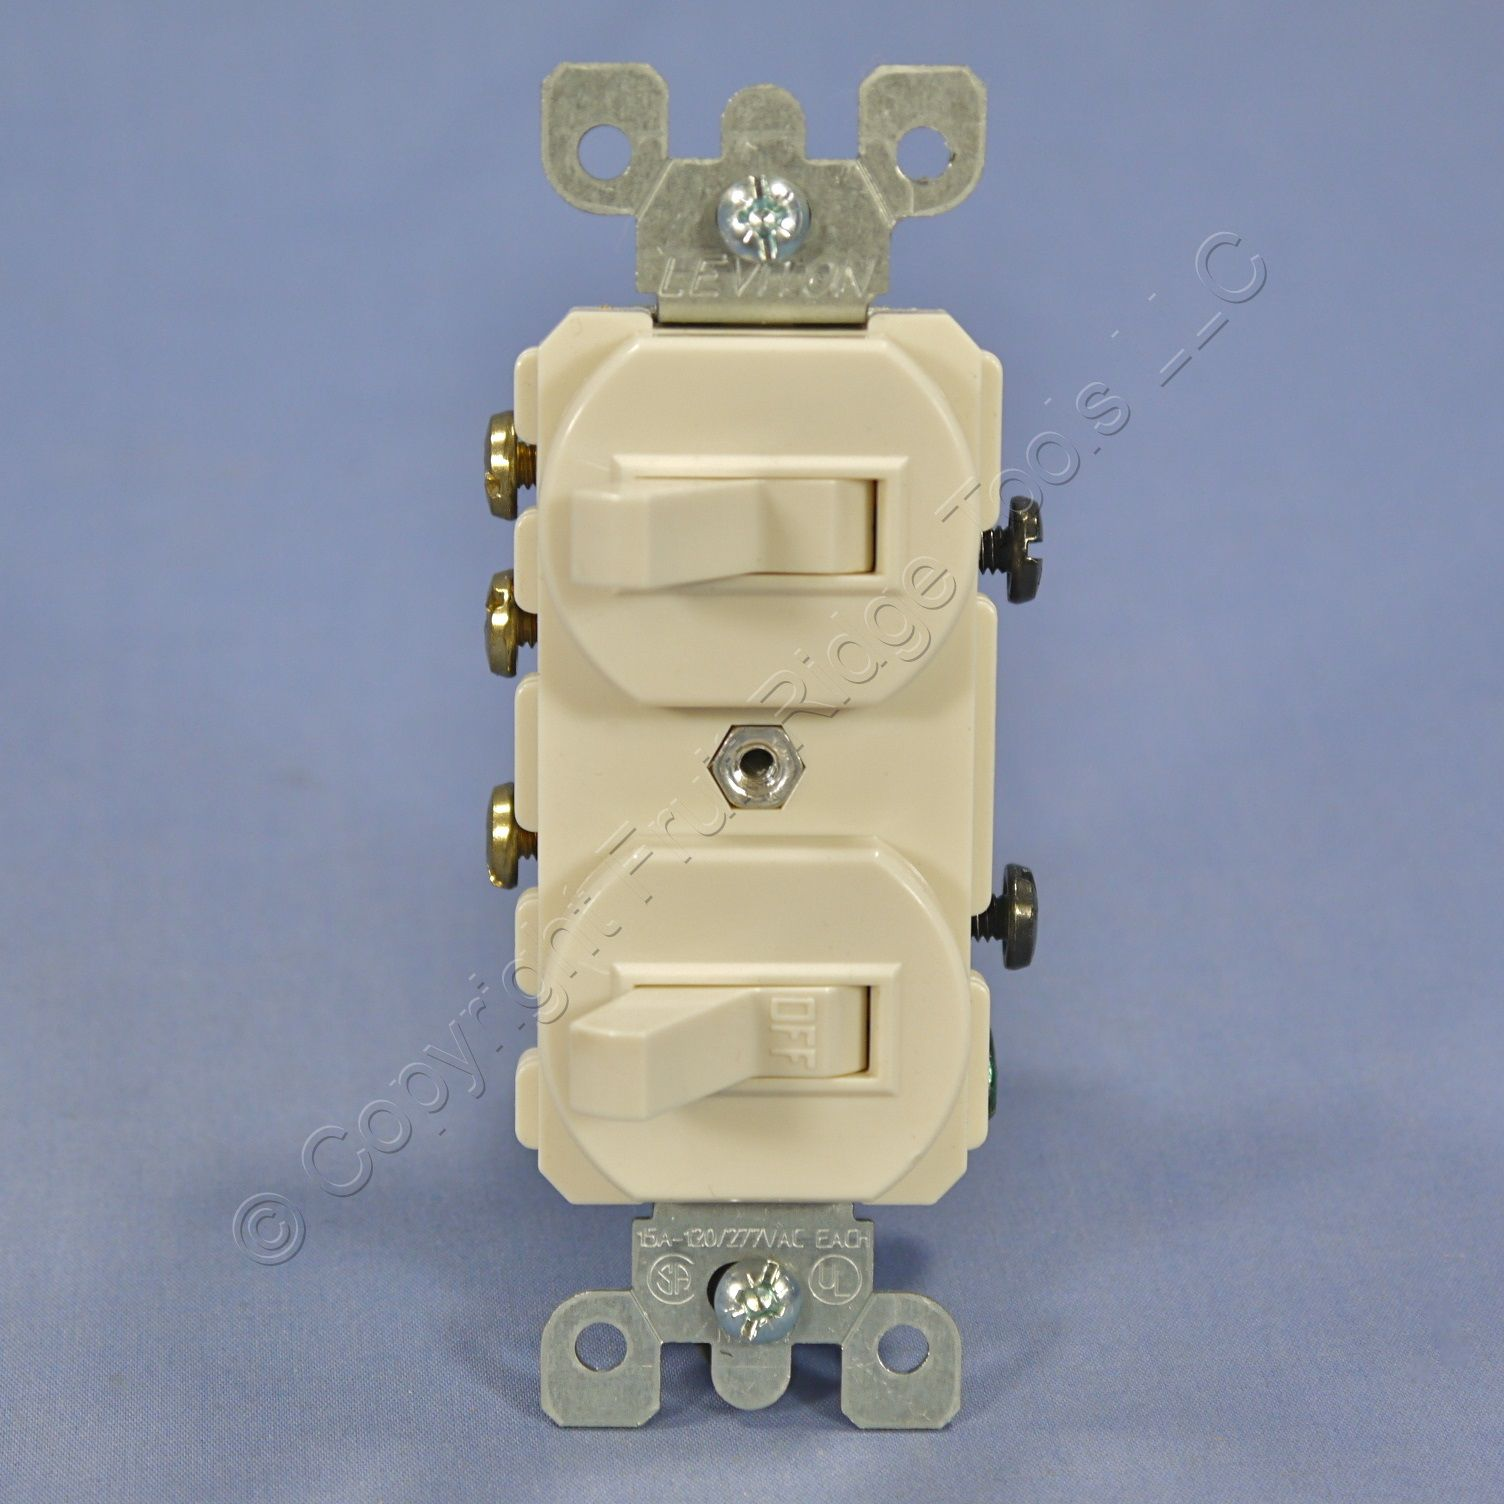 leviton lt almond double toggle light switch duplex single pole leviton lt almond double toggle light switch duplex single pole 3 way 5241 t 3 3 of 5